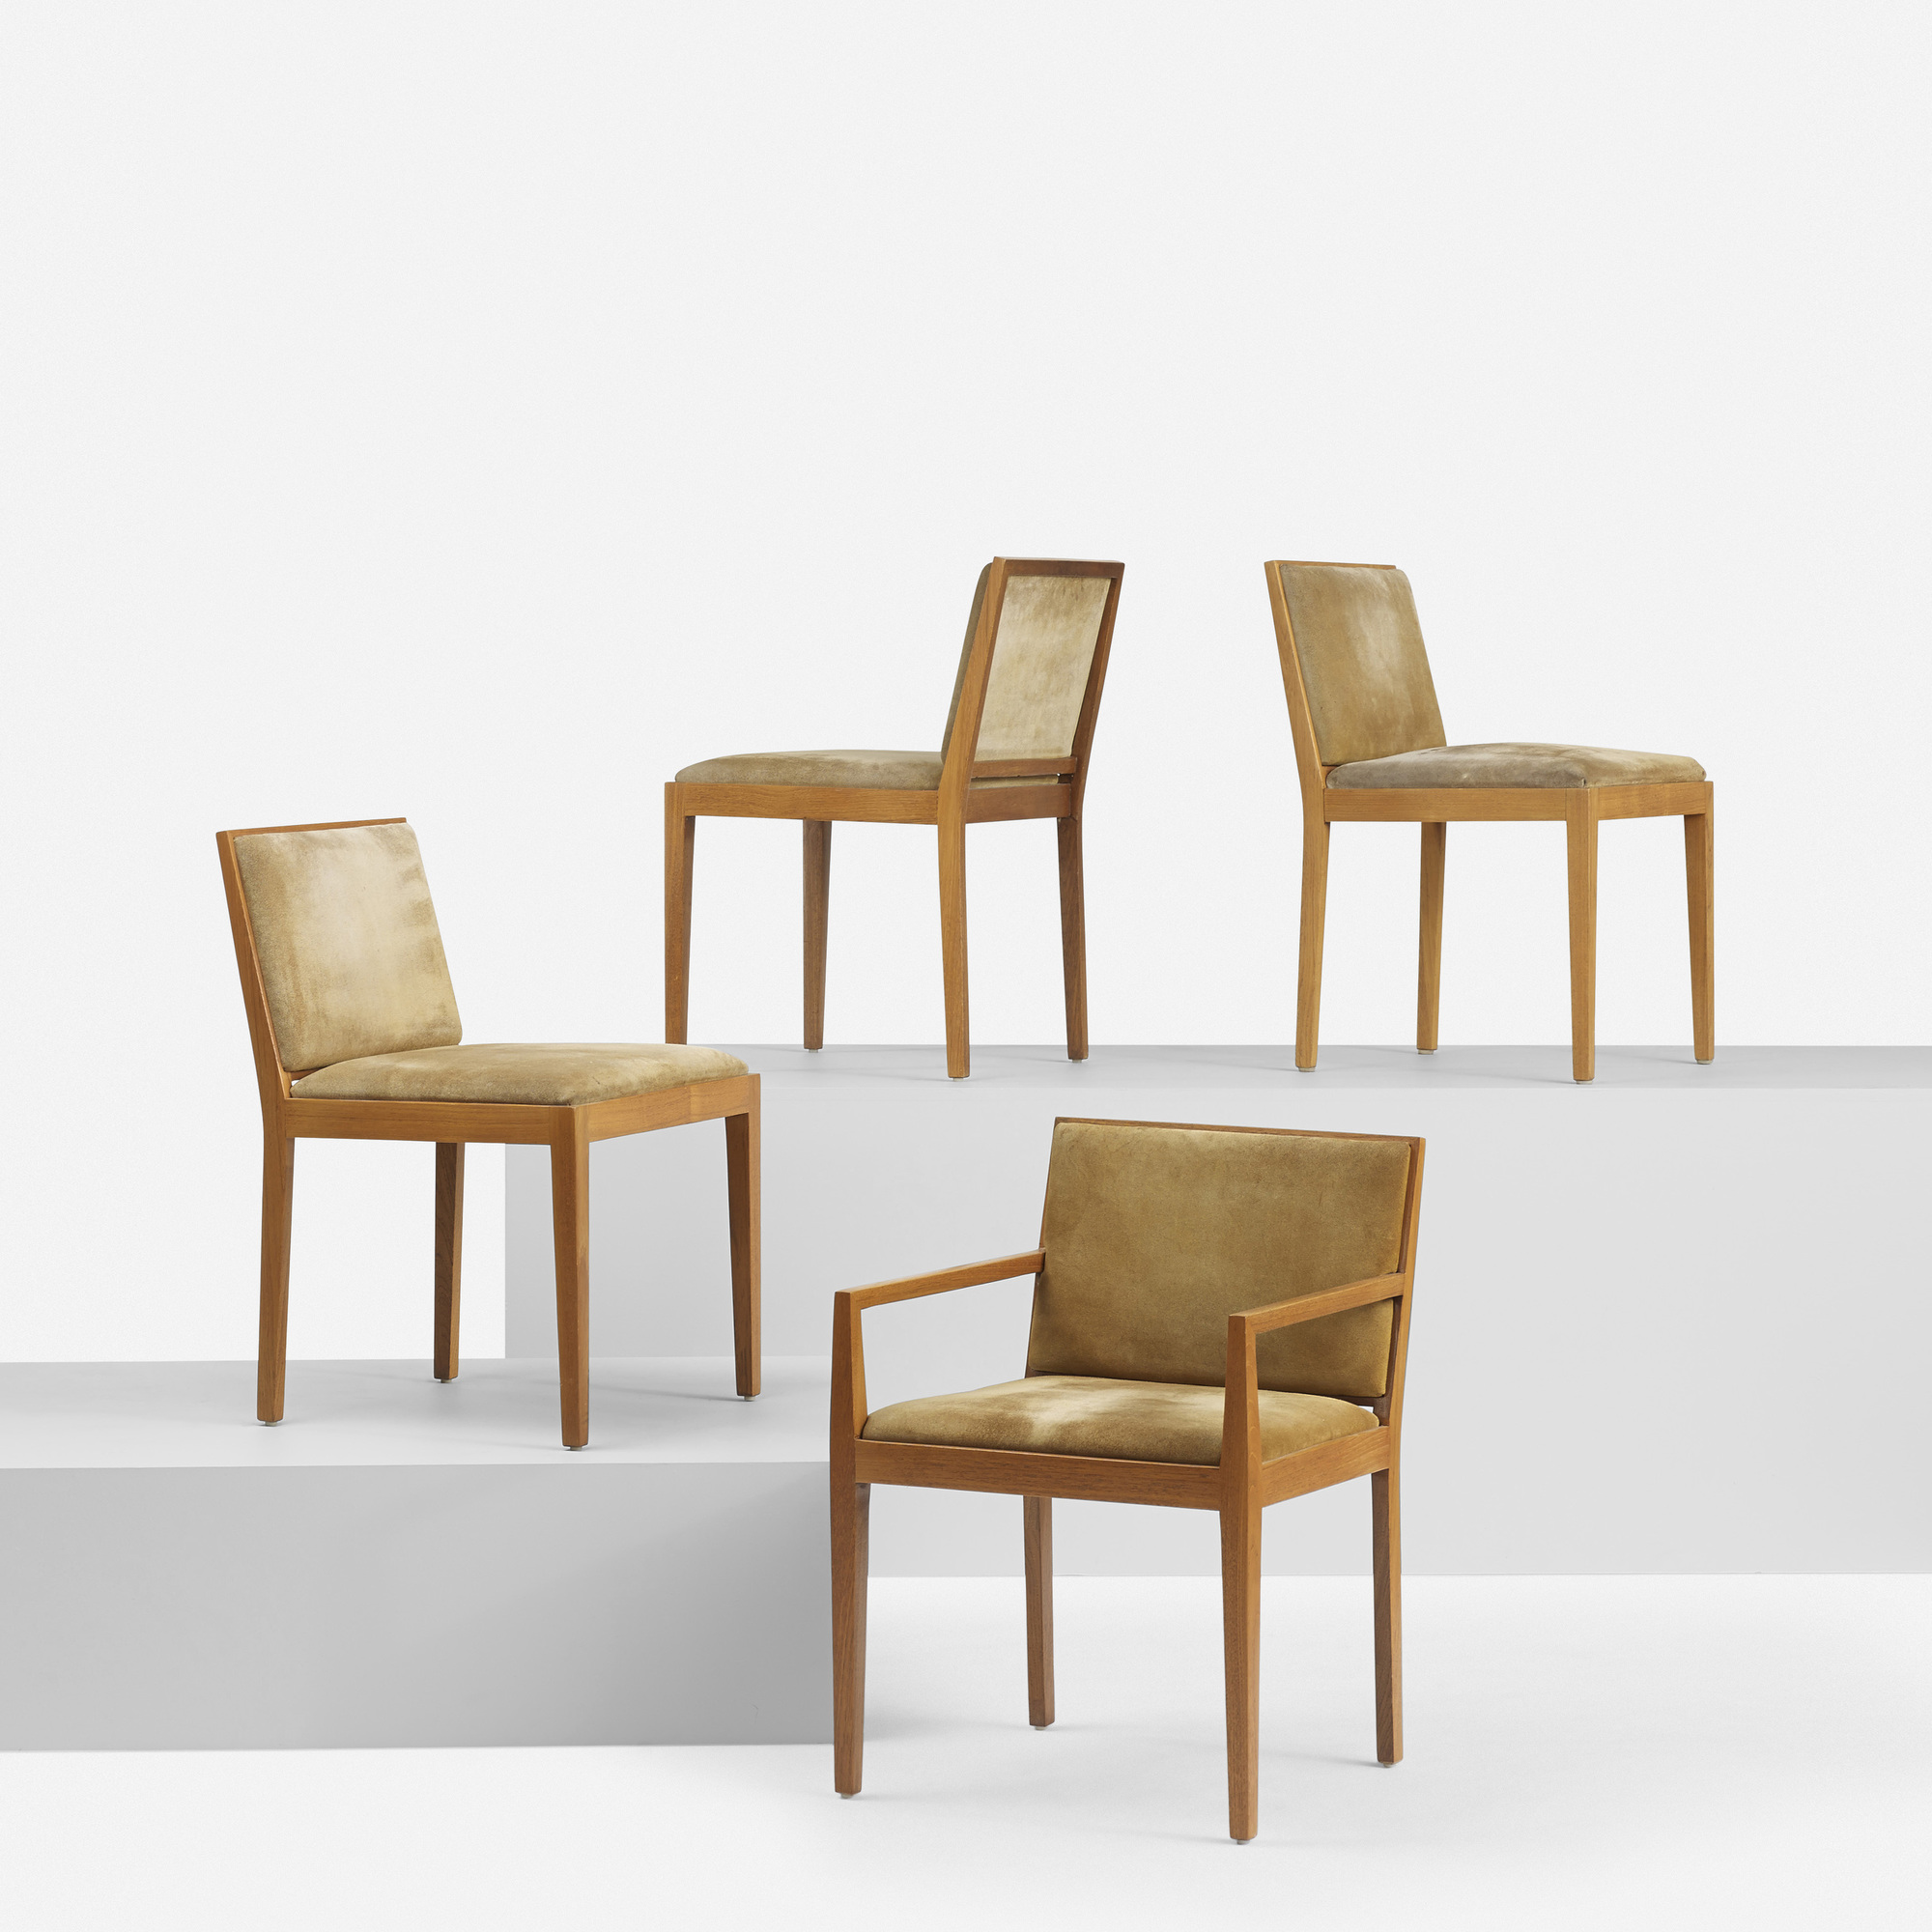 154: Ludwig Mies van der Rohe / set of eight dining chairs from 860 Lake Shore Drive, Chicago (3 of 6)